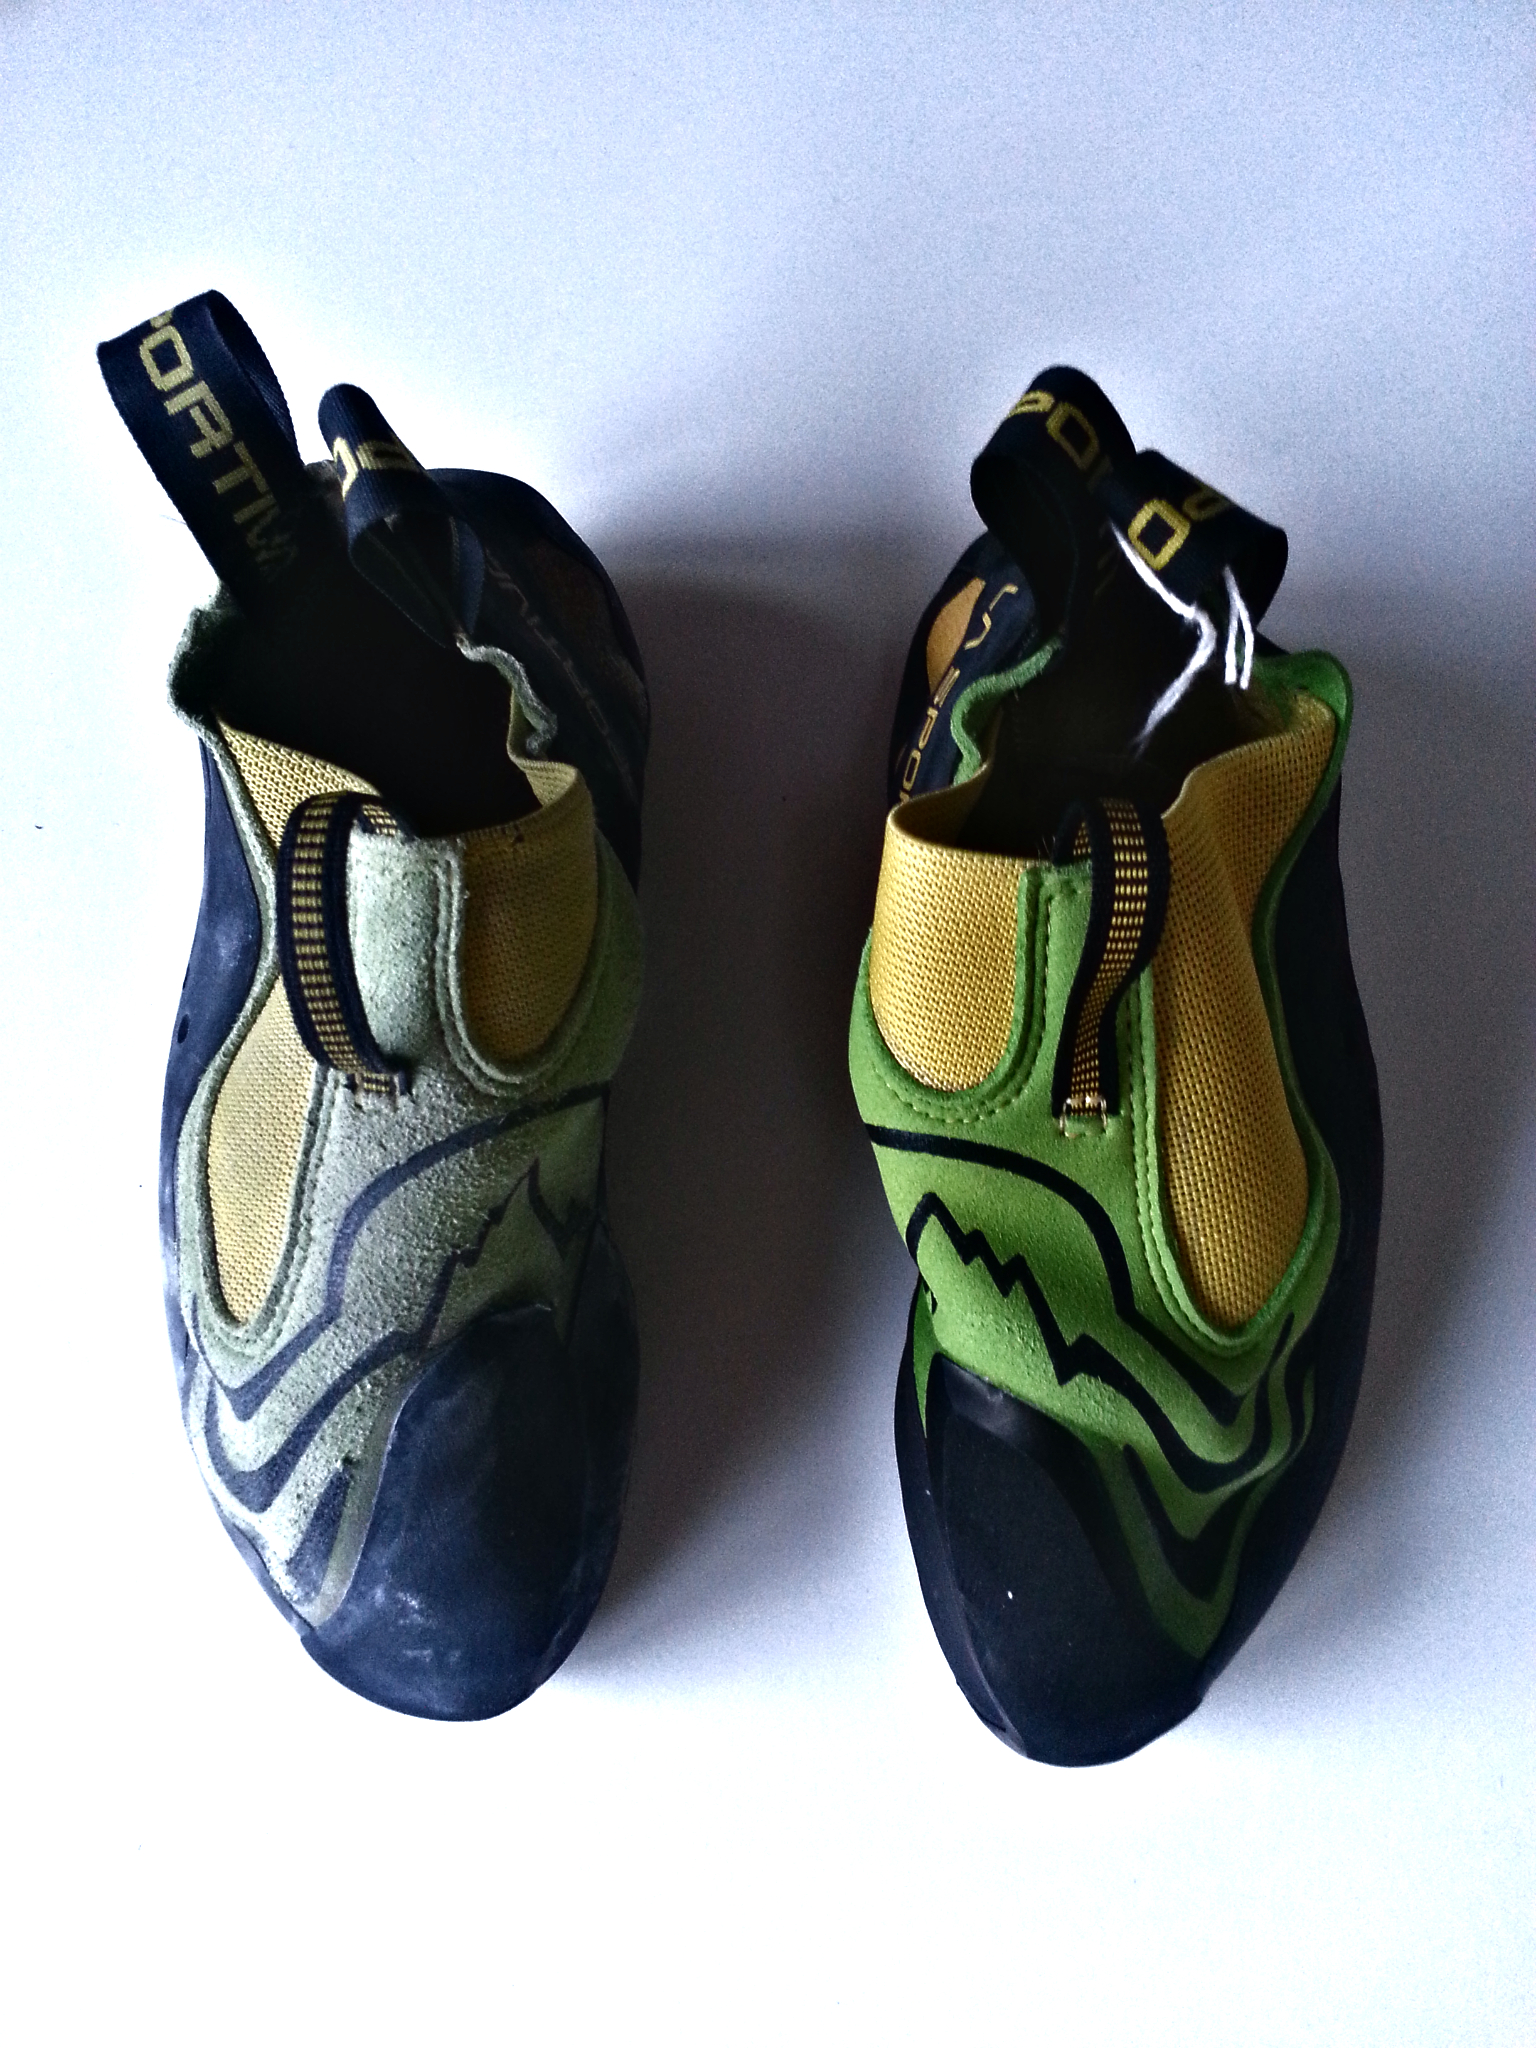 lasportiva | speedster | old vs. new –  note the rubber on the inside on top losing cohesion